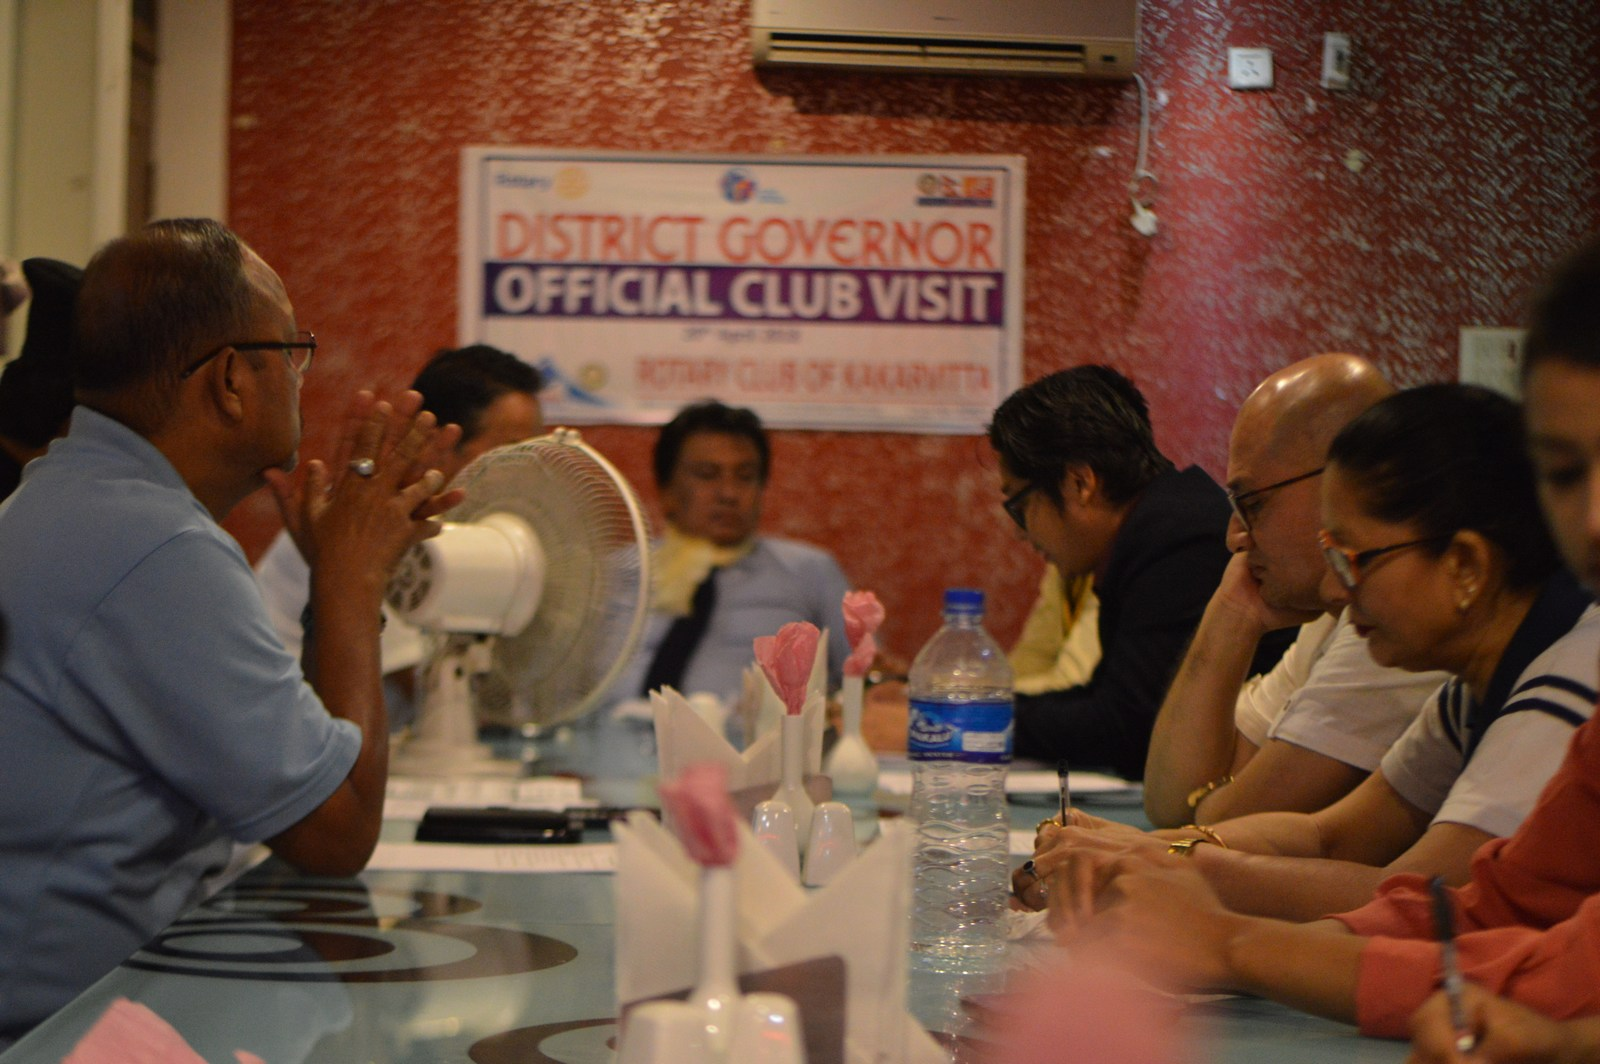 District-Governors-Official-Club-Visit-2017-18-Rotary-Club-of-Kakarvitta-17